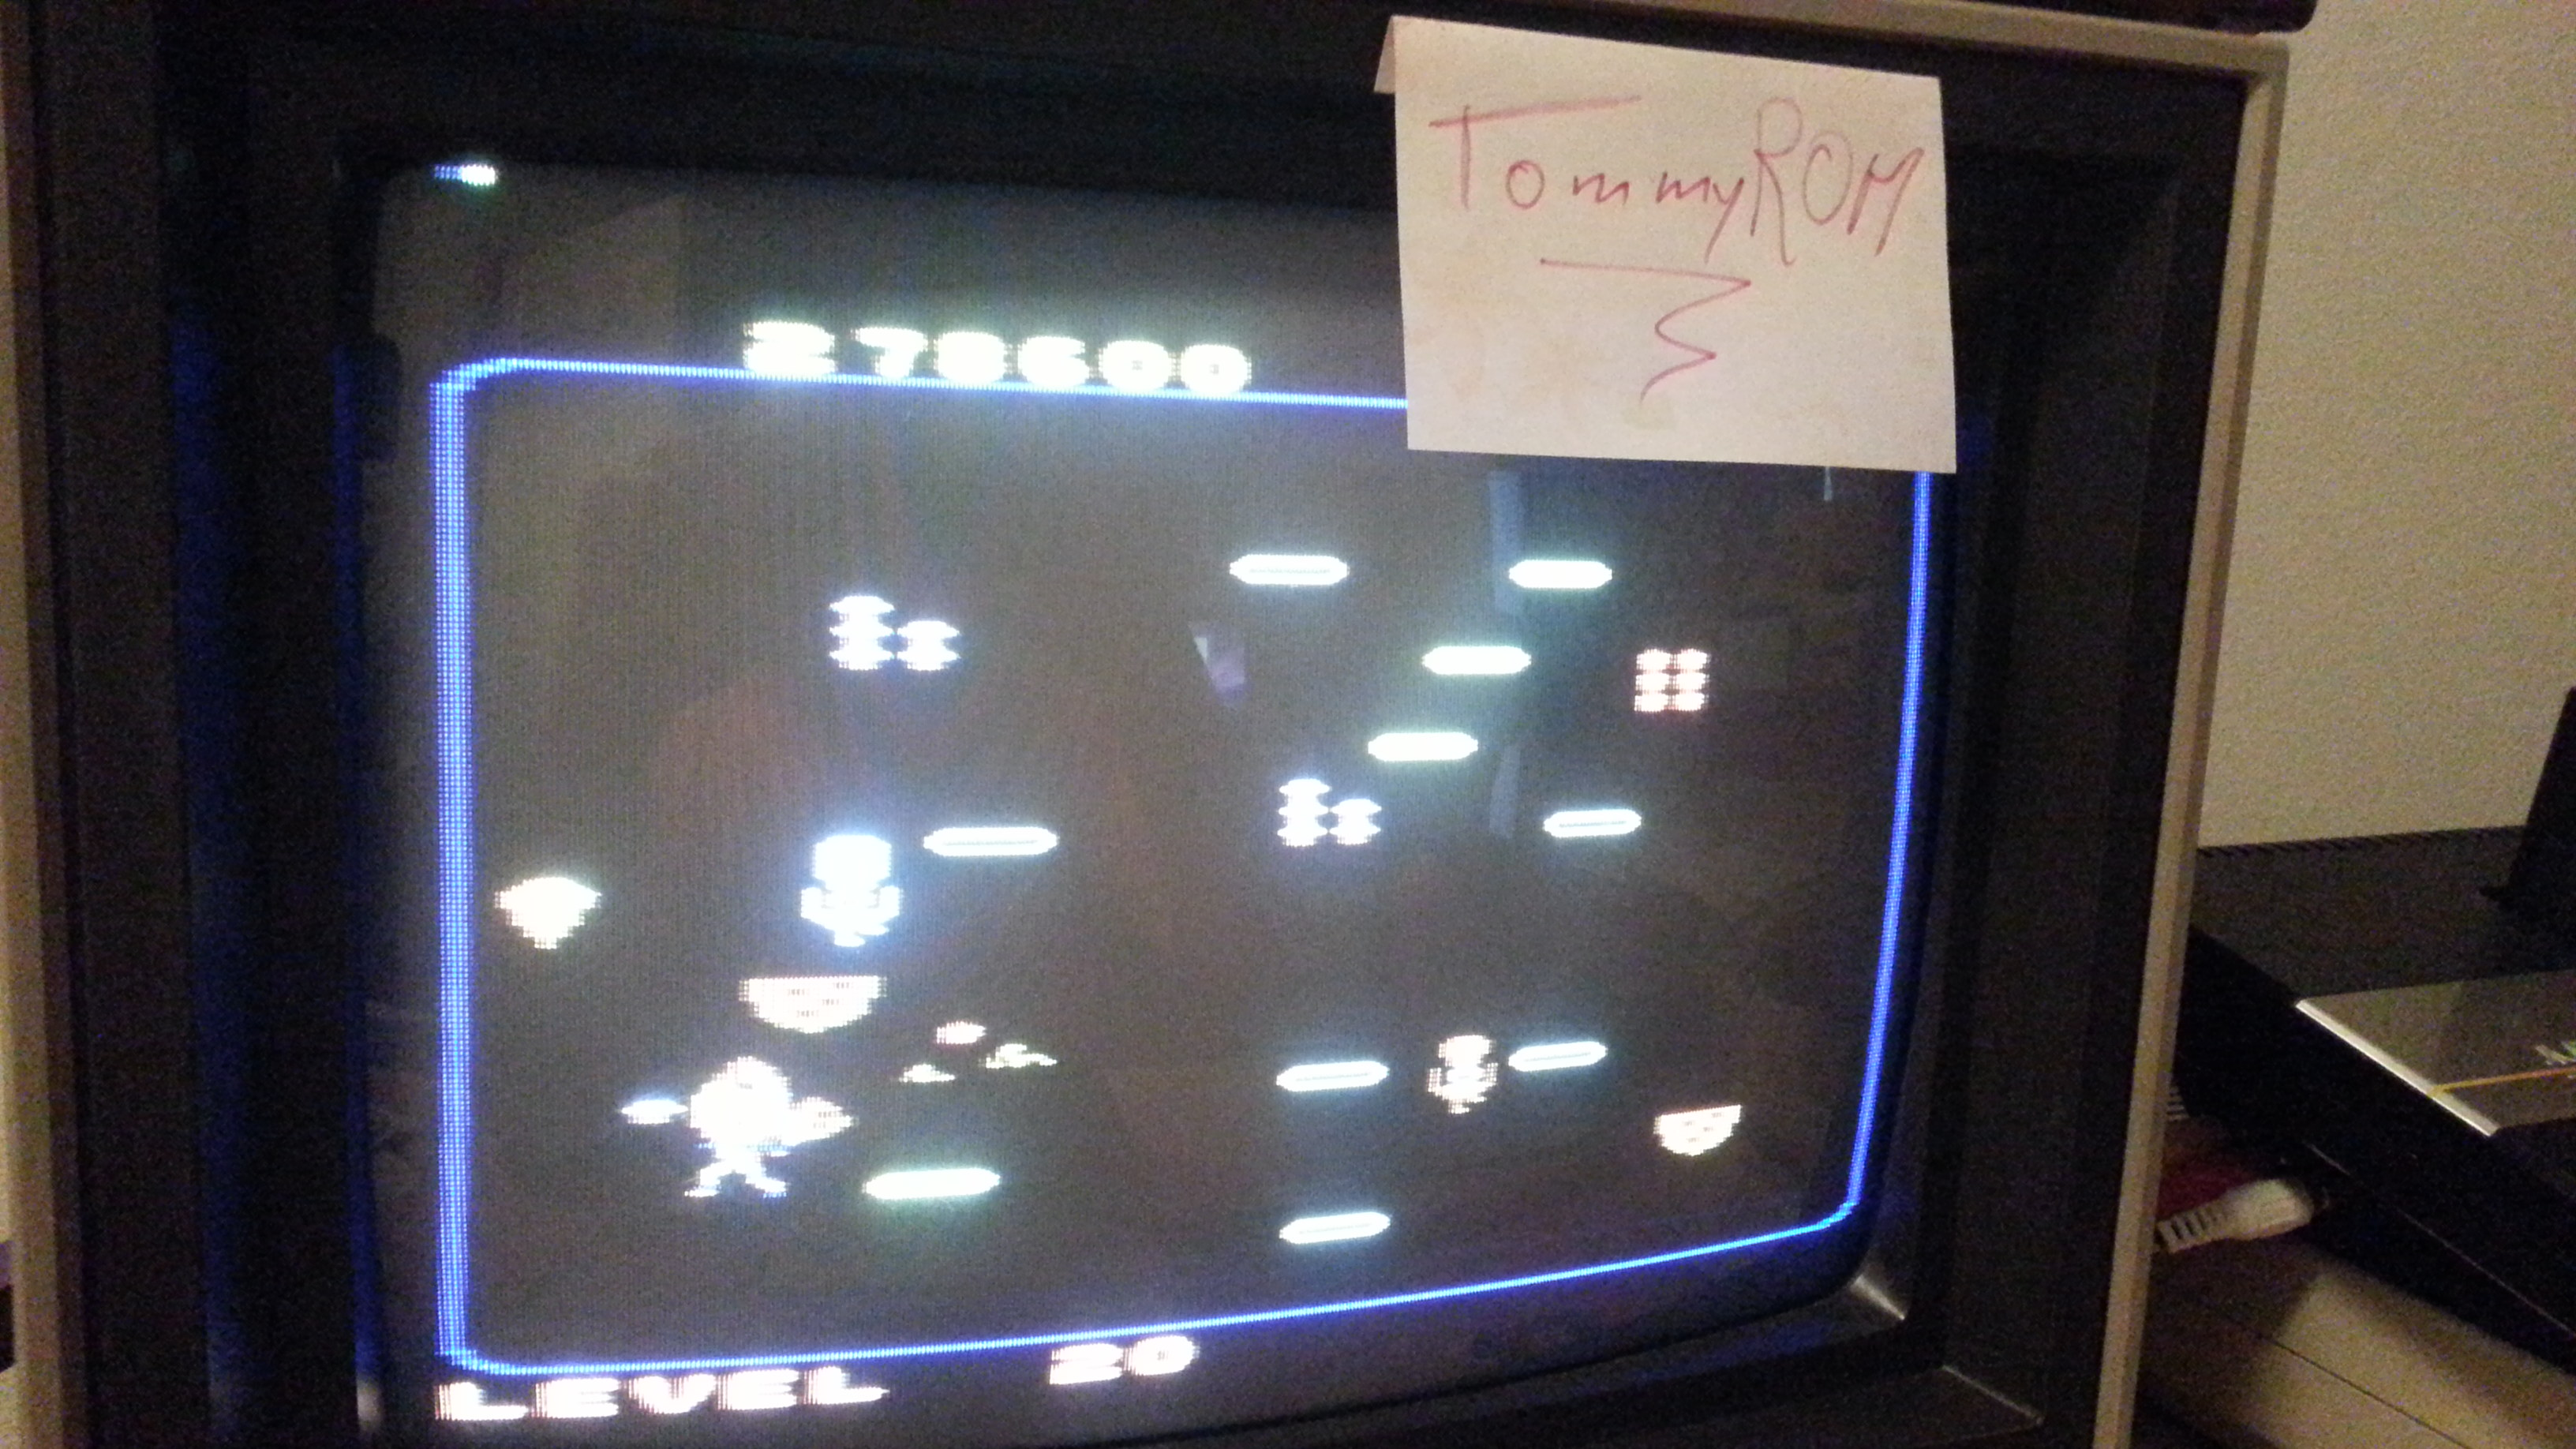 TommyROM: Food Fight: Intermediate (Atari 7800) 278,600 points on 2014-04-20 21:45:51